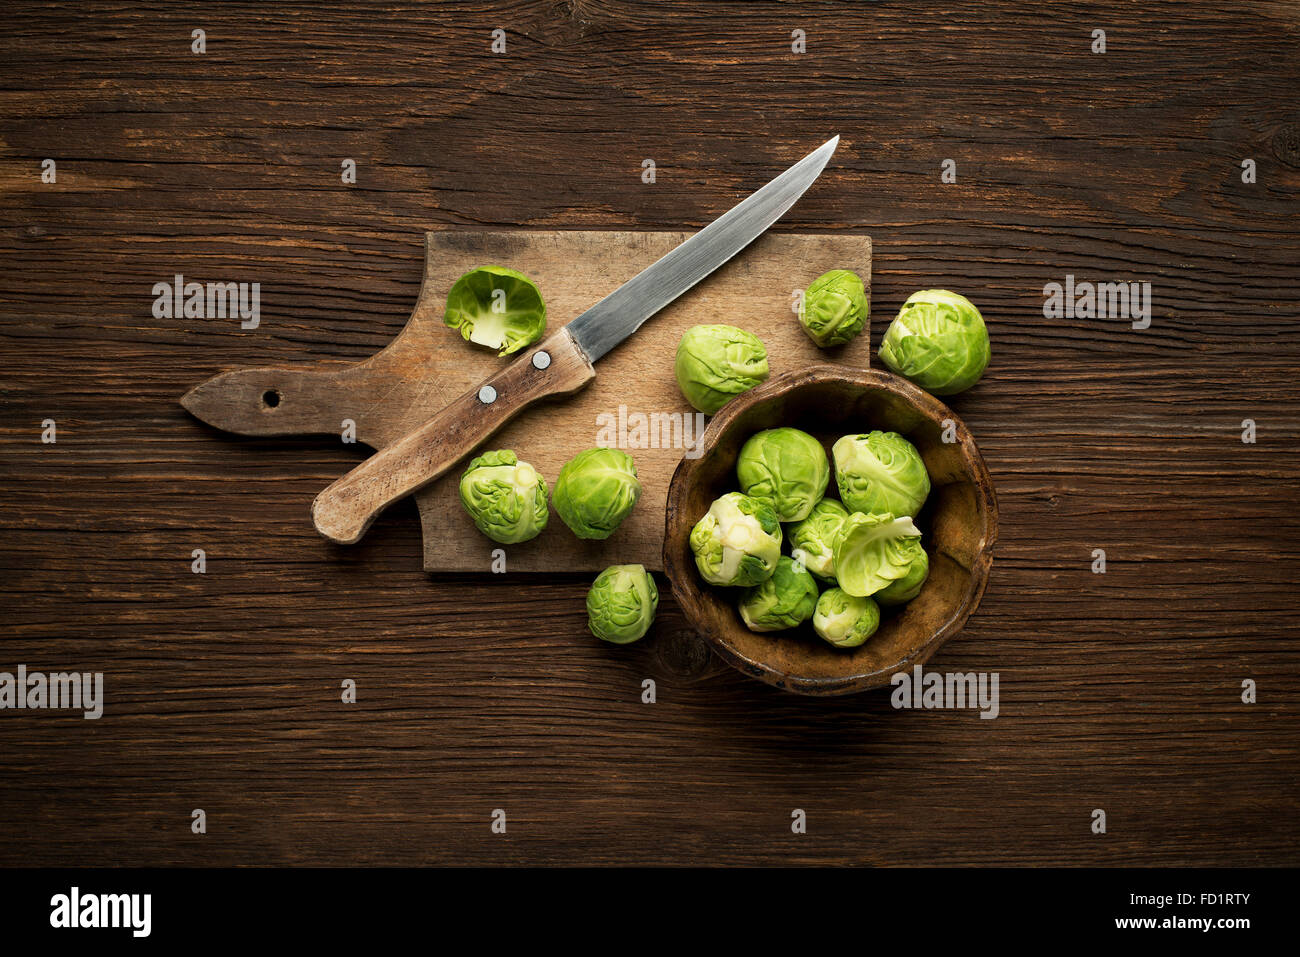 Fresh raw Brussels sprouts on a wooden background. - Stock Image